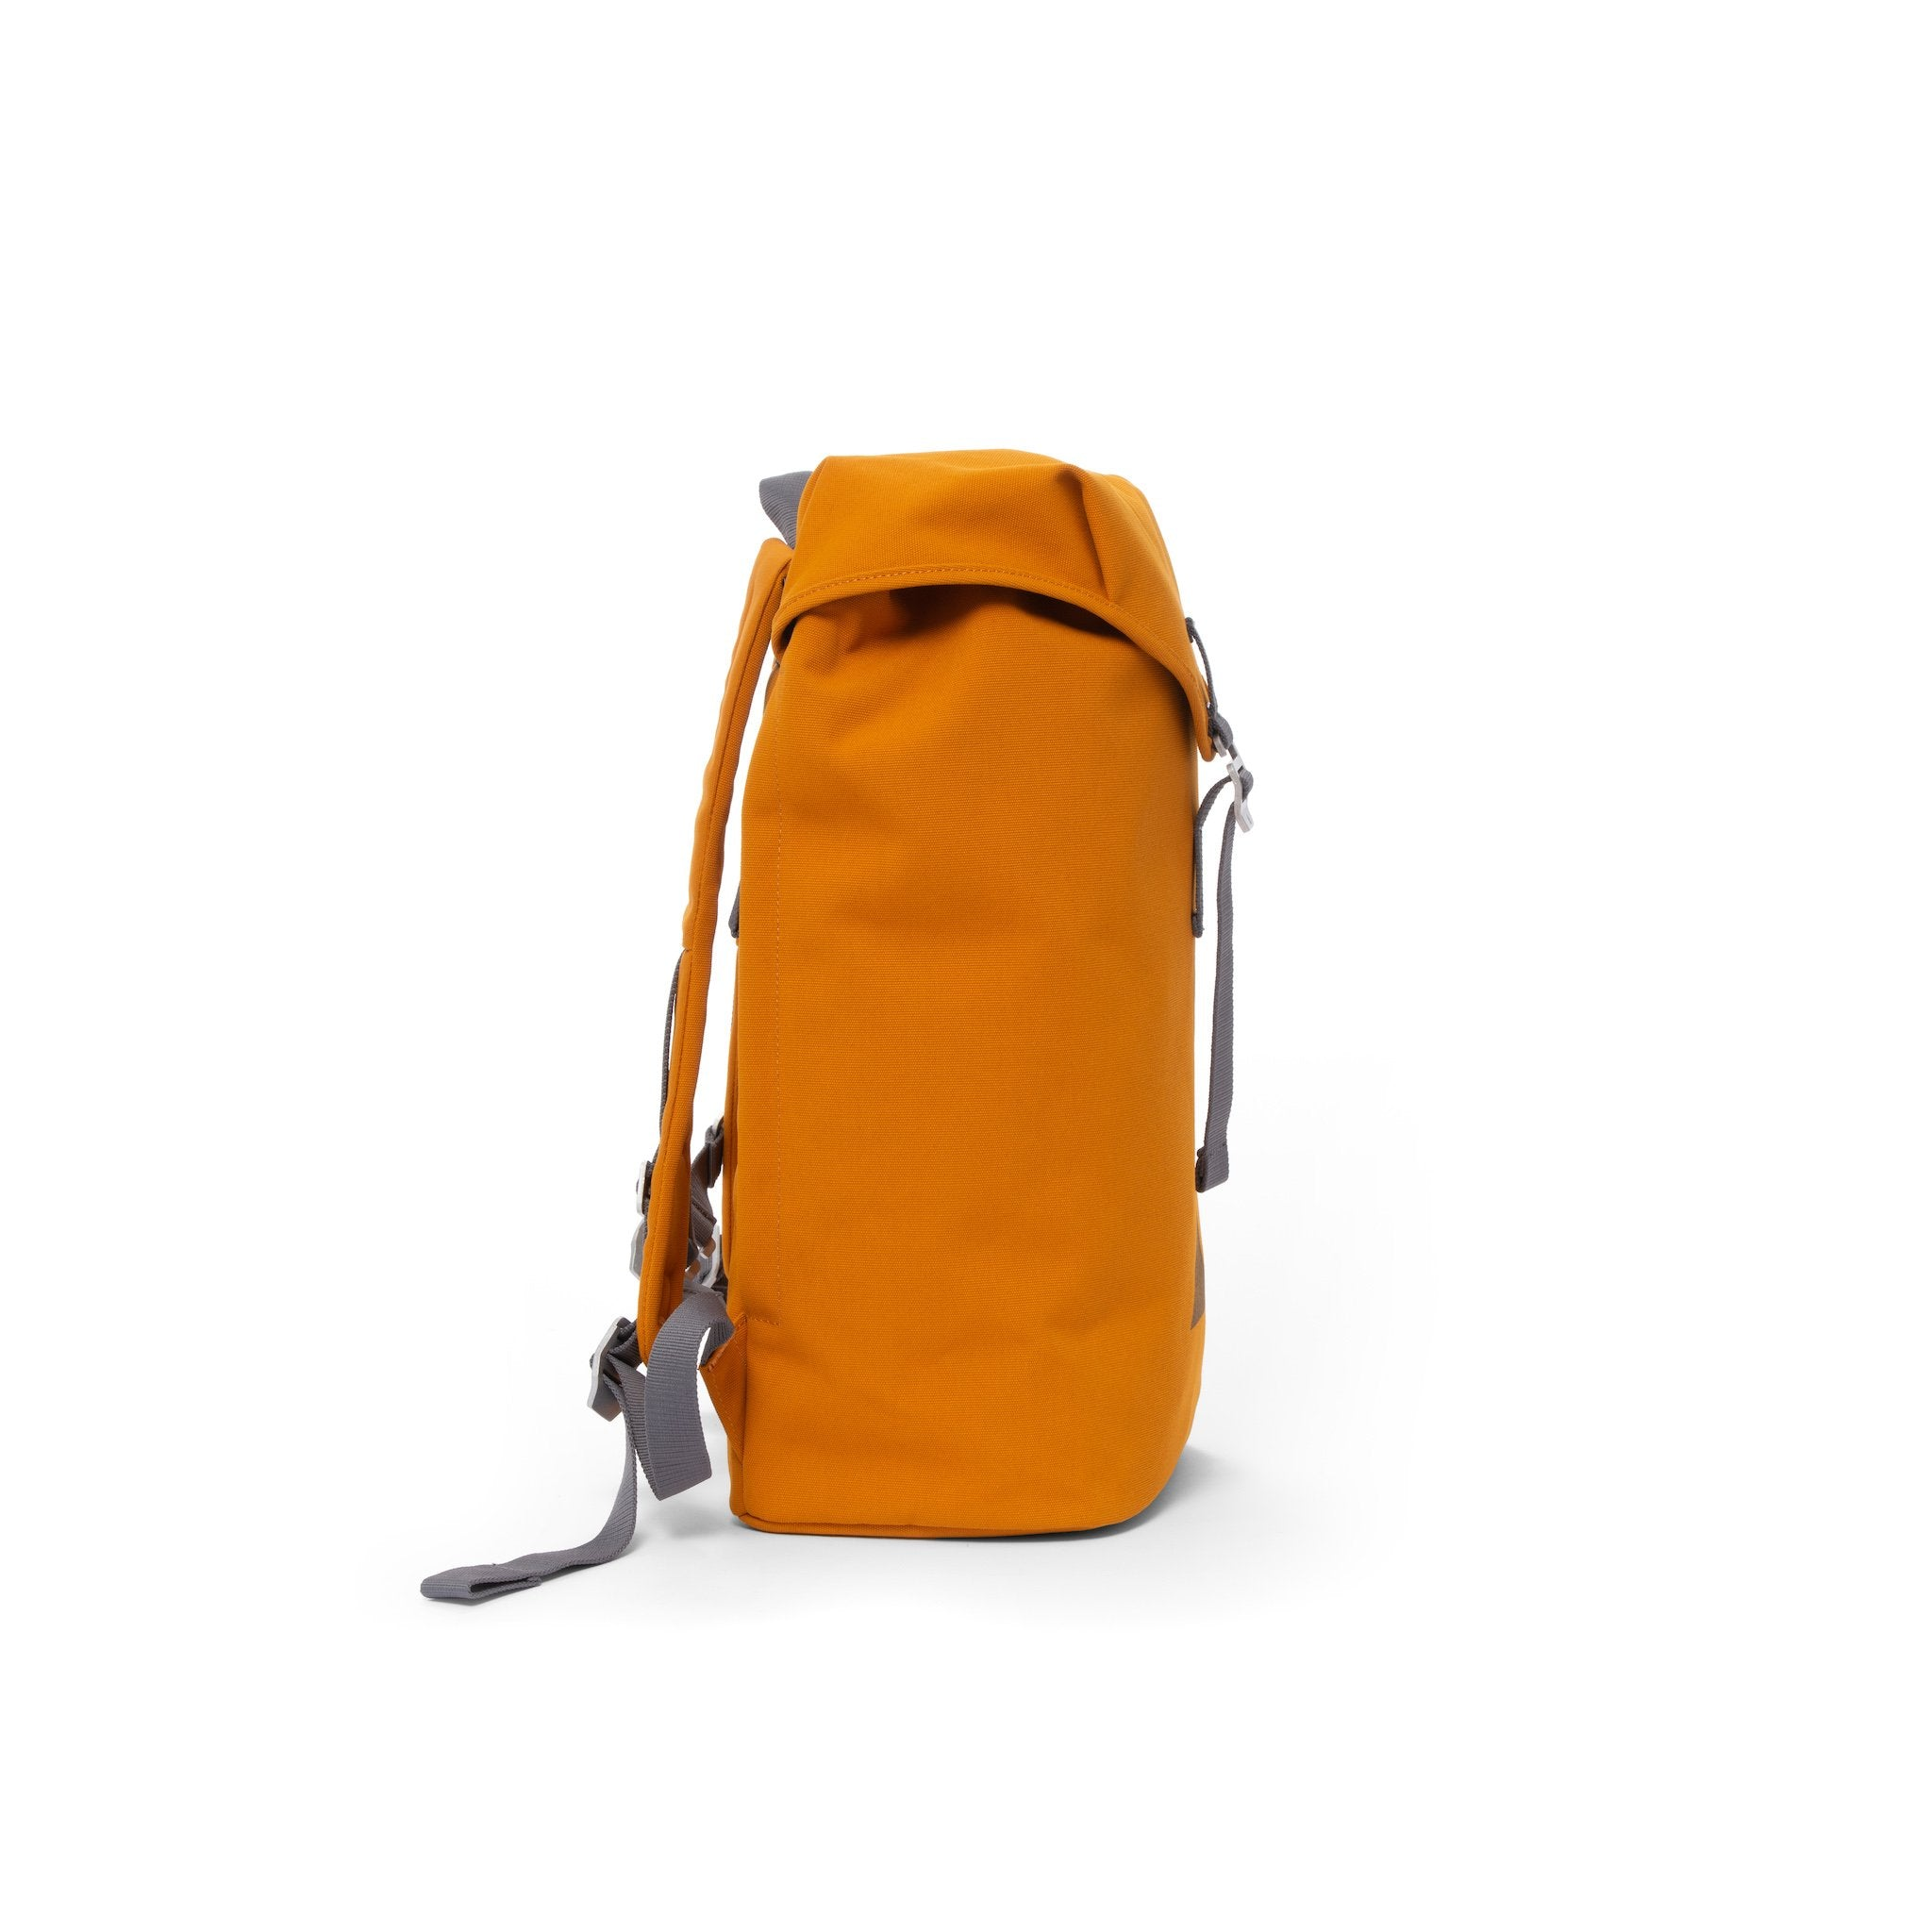 Orange waterproof backpack with flap and metal buckle.